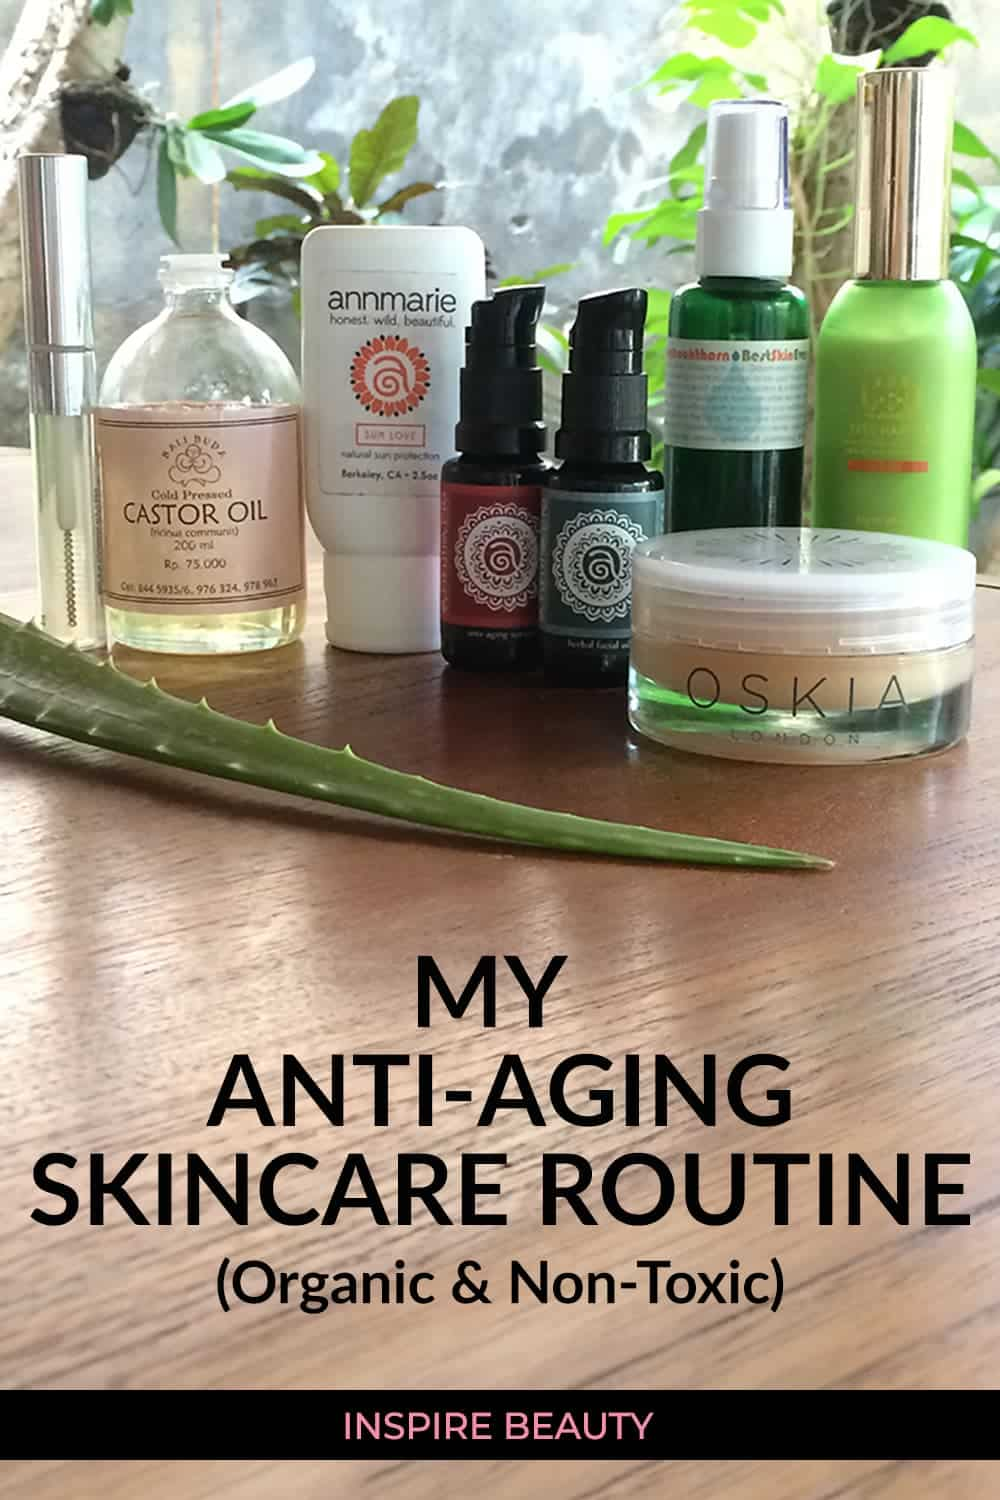 Natasha's natural anti-aging skincare rouitne featuring products from Annmarie Skin Care, Living Libations, Oskia, and Tata Harper.